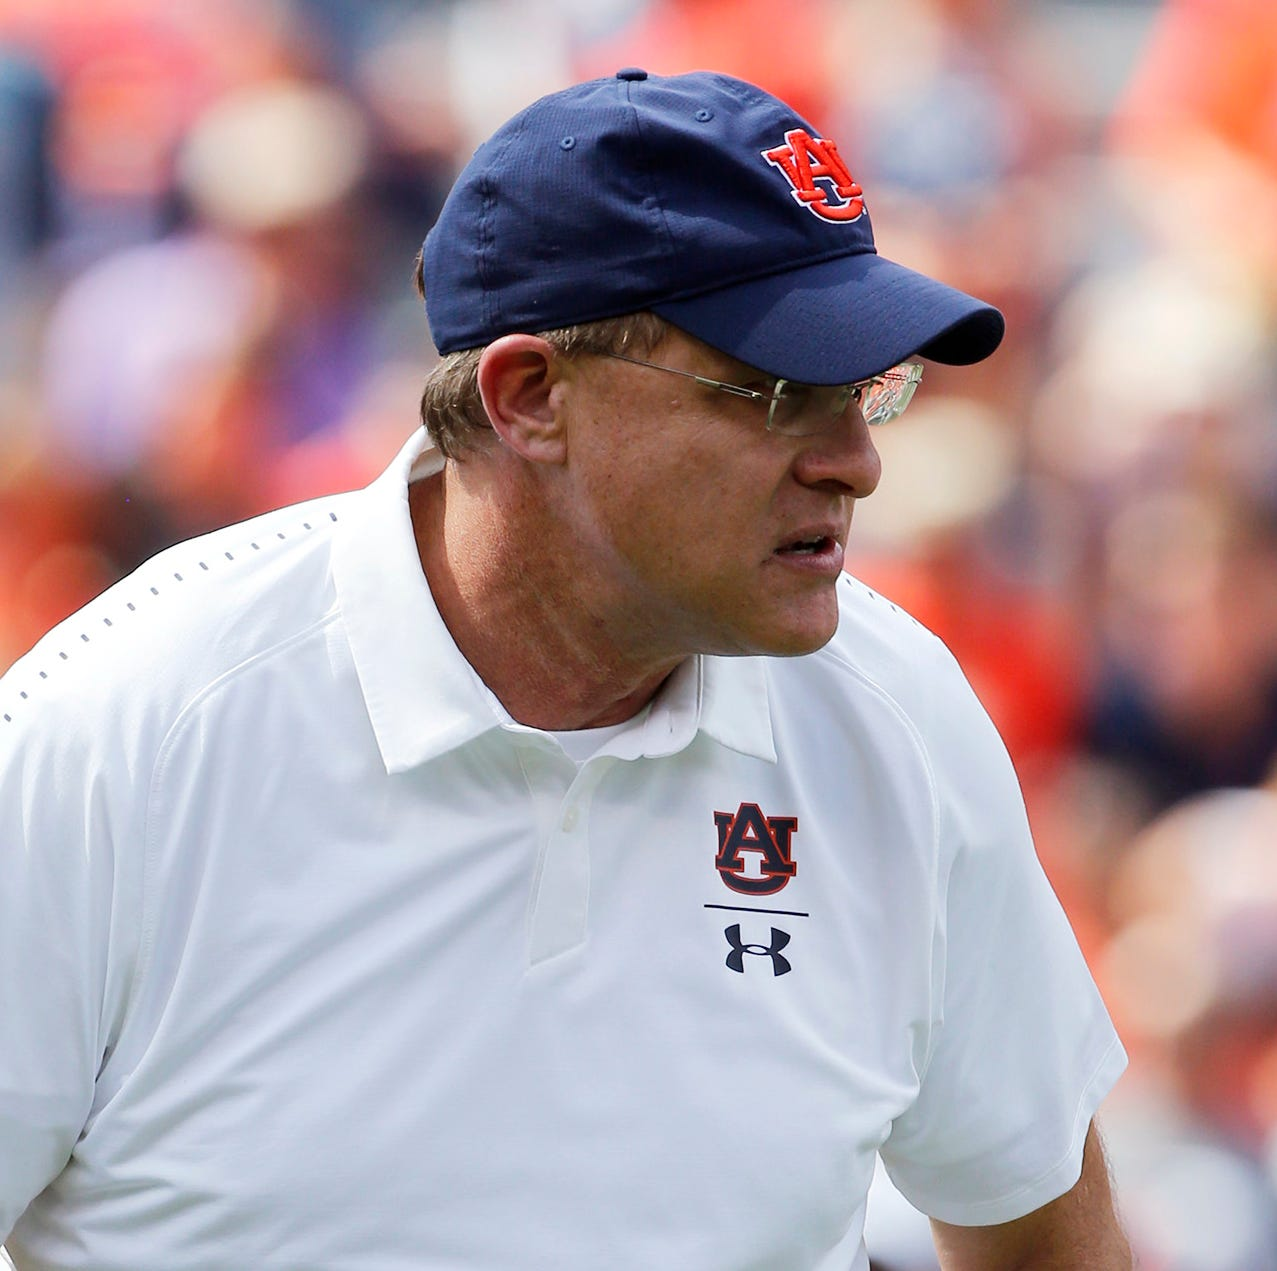 If Auburn's loss to LSU puzzles you, you're not alone